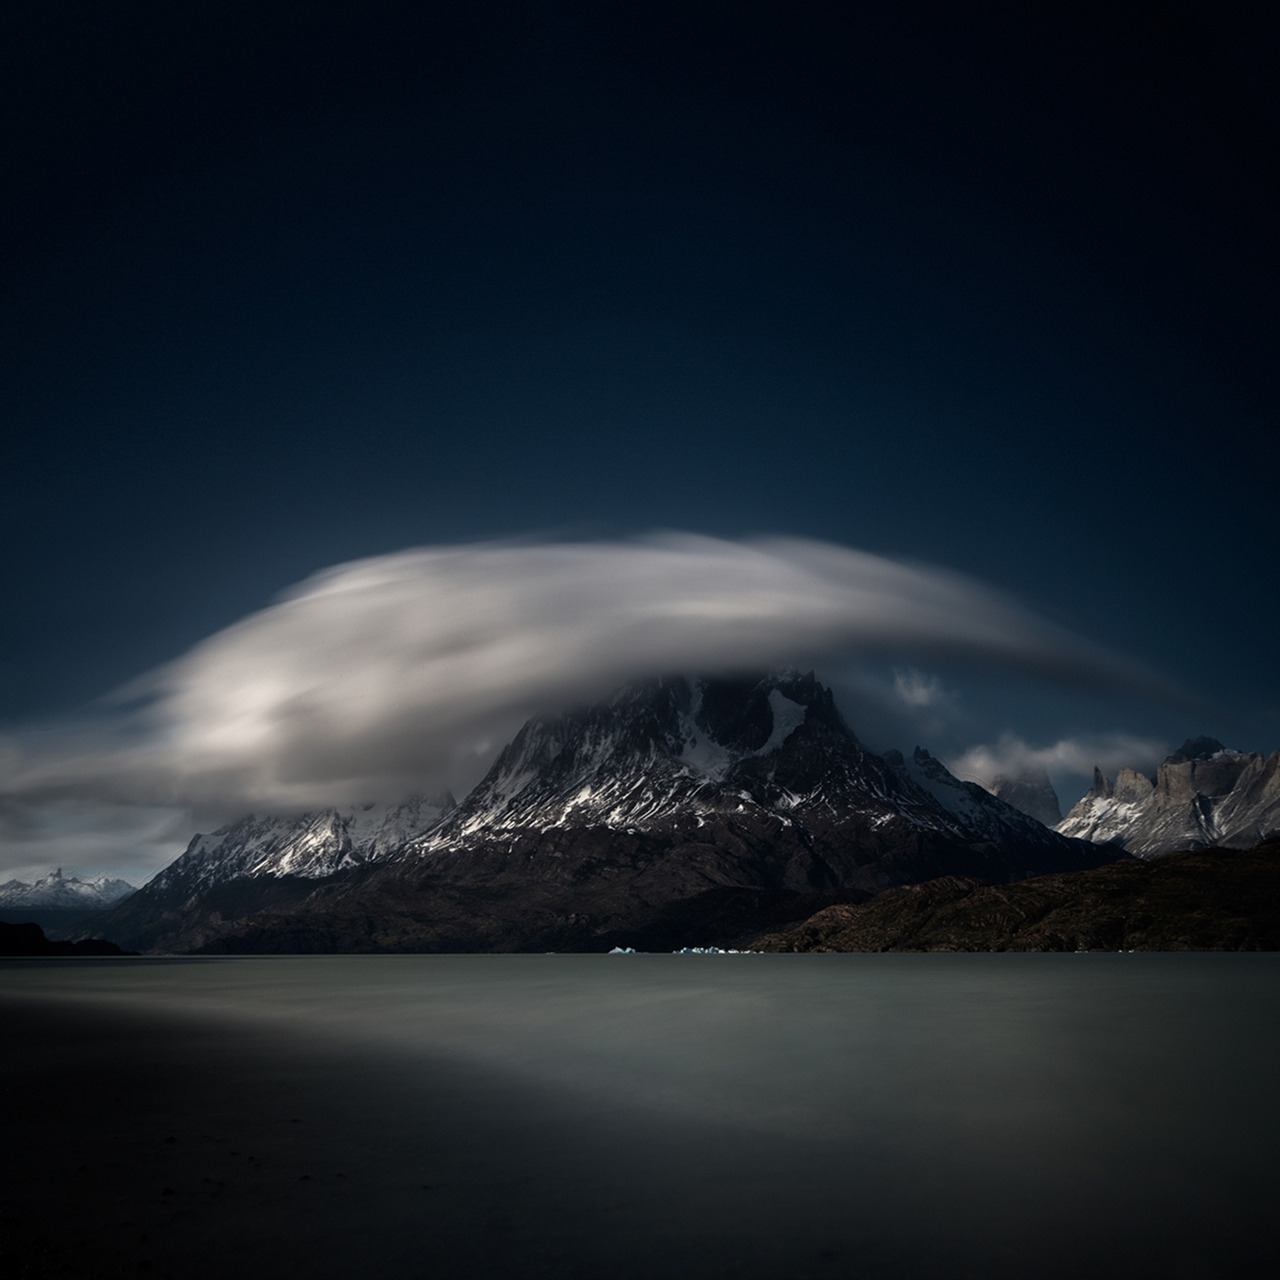 The beautiful scenery mountains Chile photos Andy Lee 03